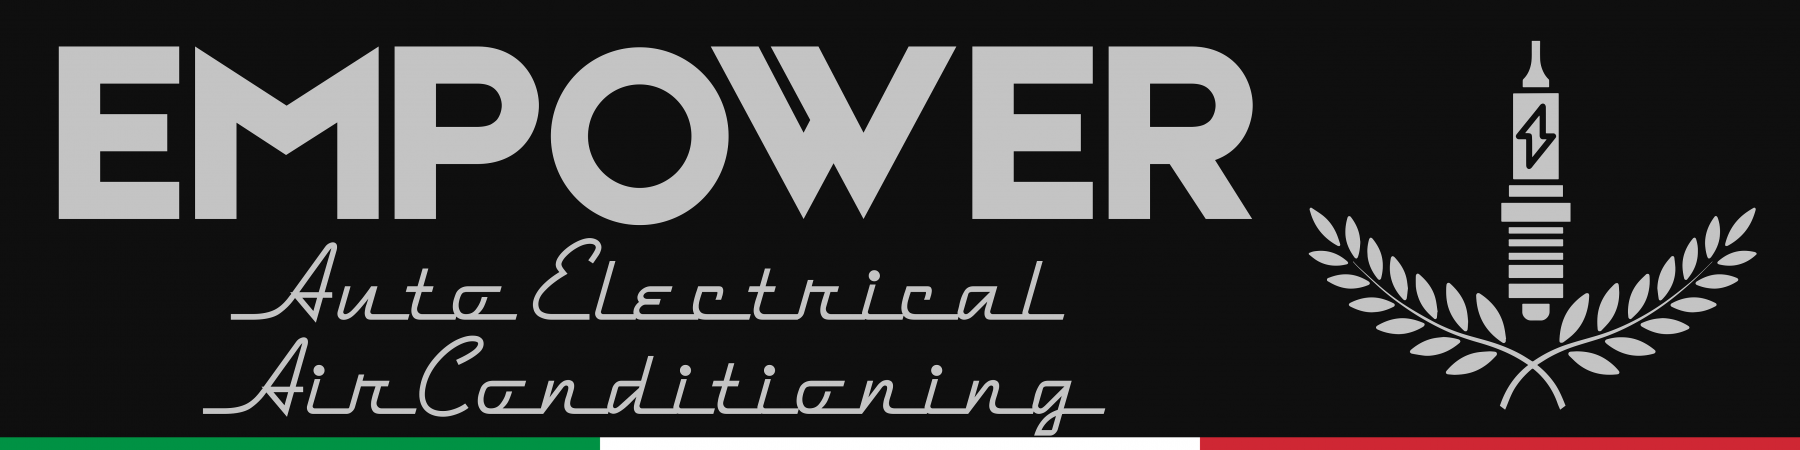 Empower Auto Electrical Air Conditioning